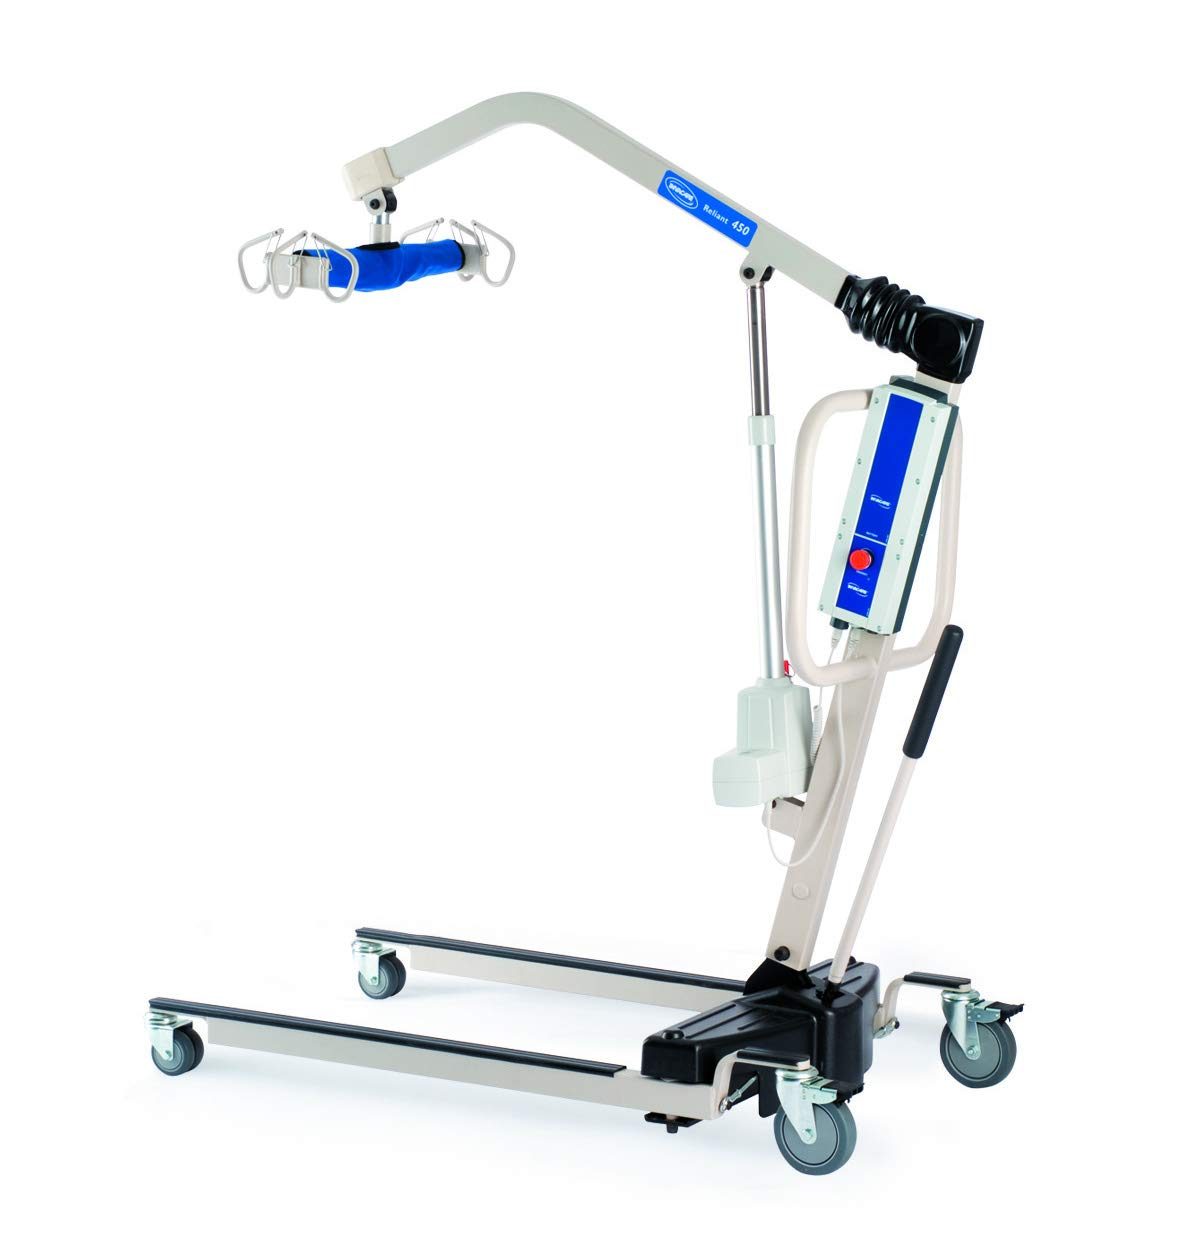 Invacare Reliant Battery-Powered Patient Lift with Manual Low Base, 450 lb. Weight Capacity, RPL450-1